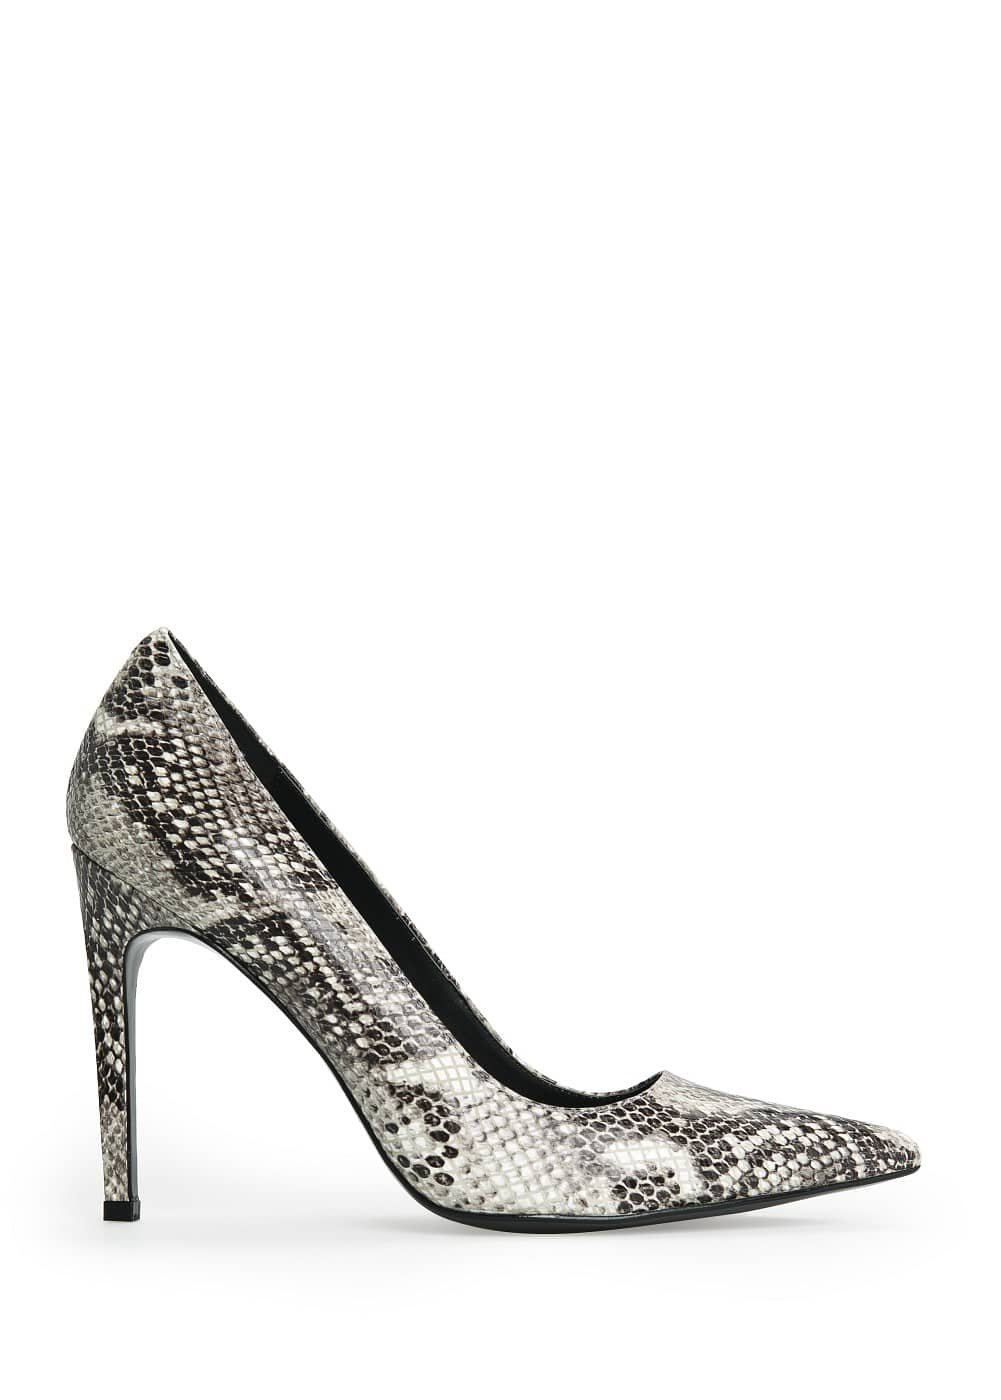 Snakeskin leather stiletto shoes